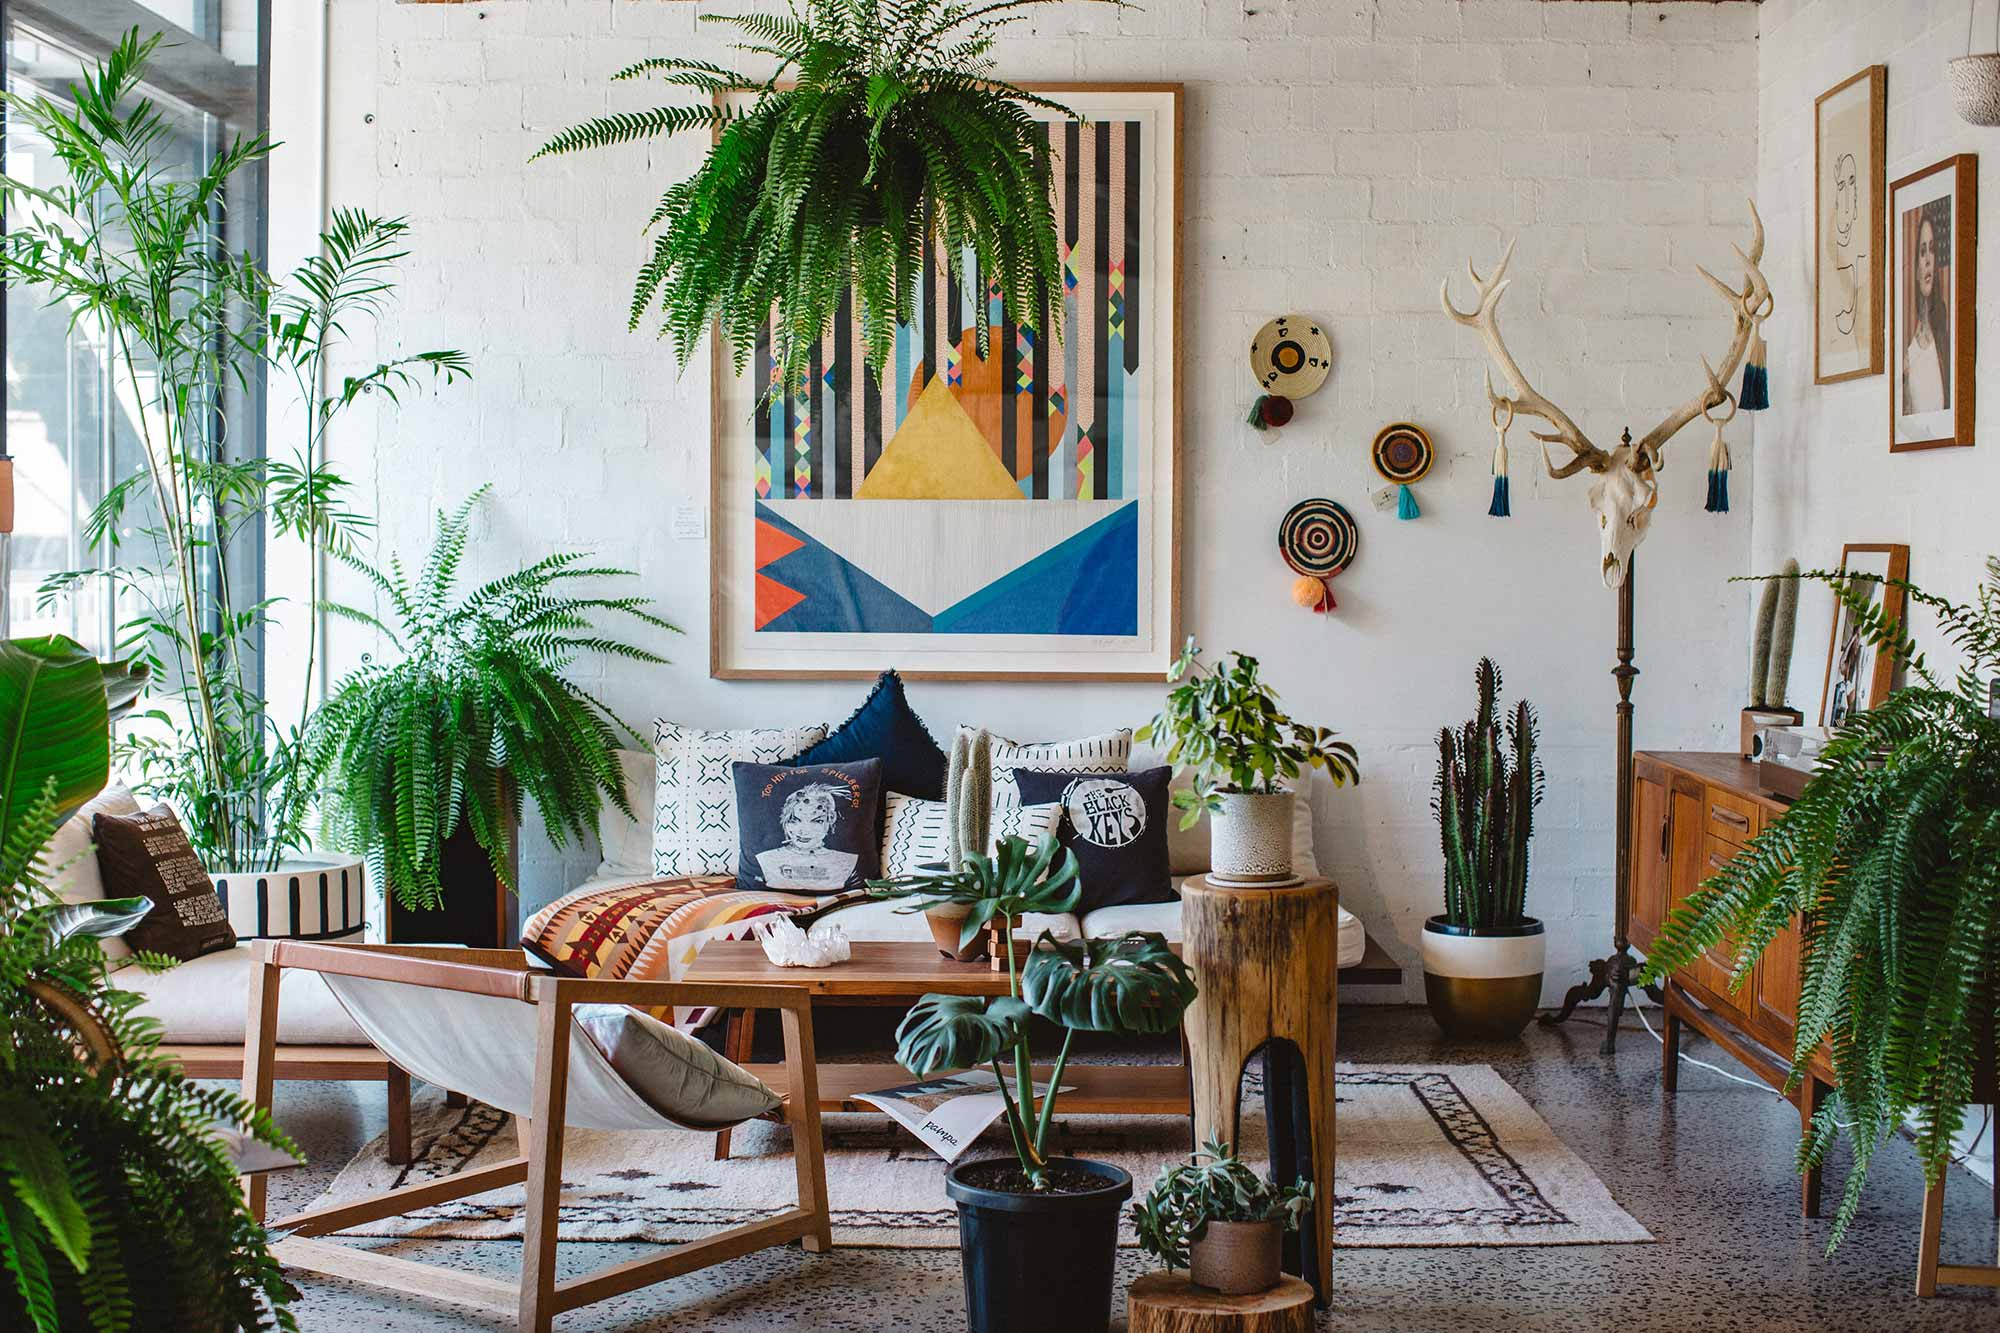 Living room with a lot of house plants